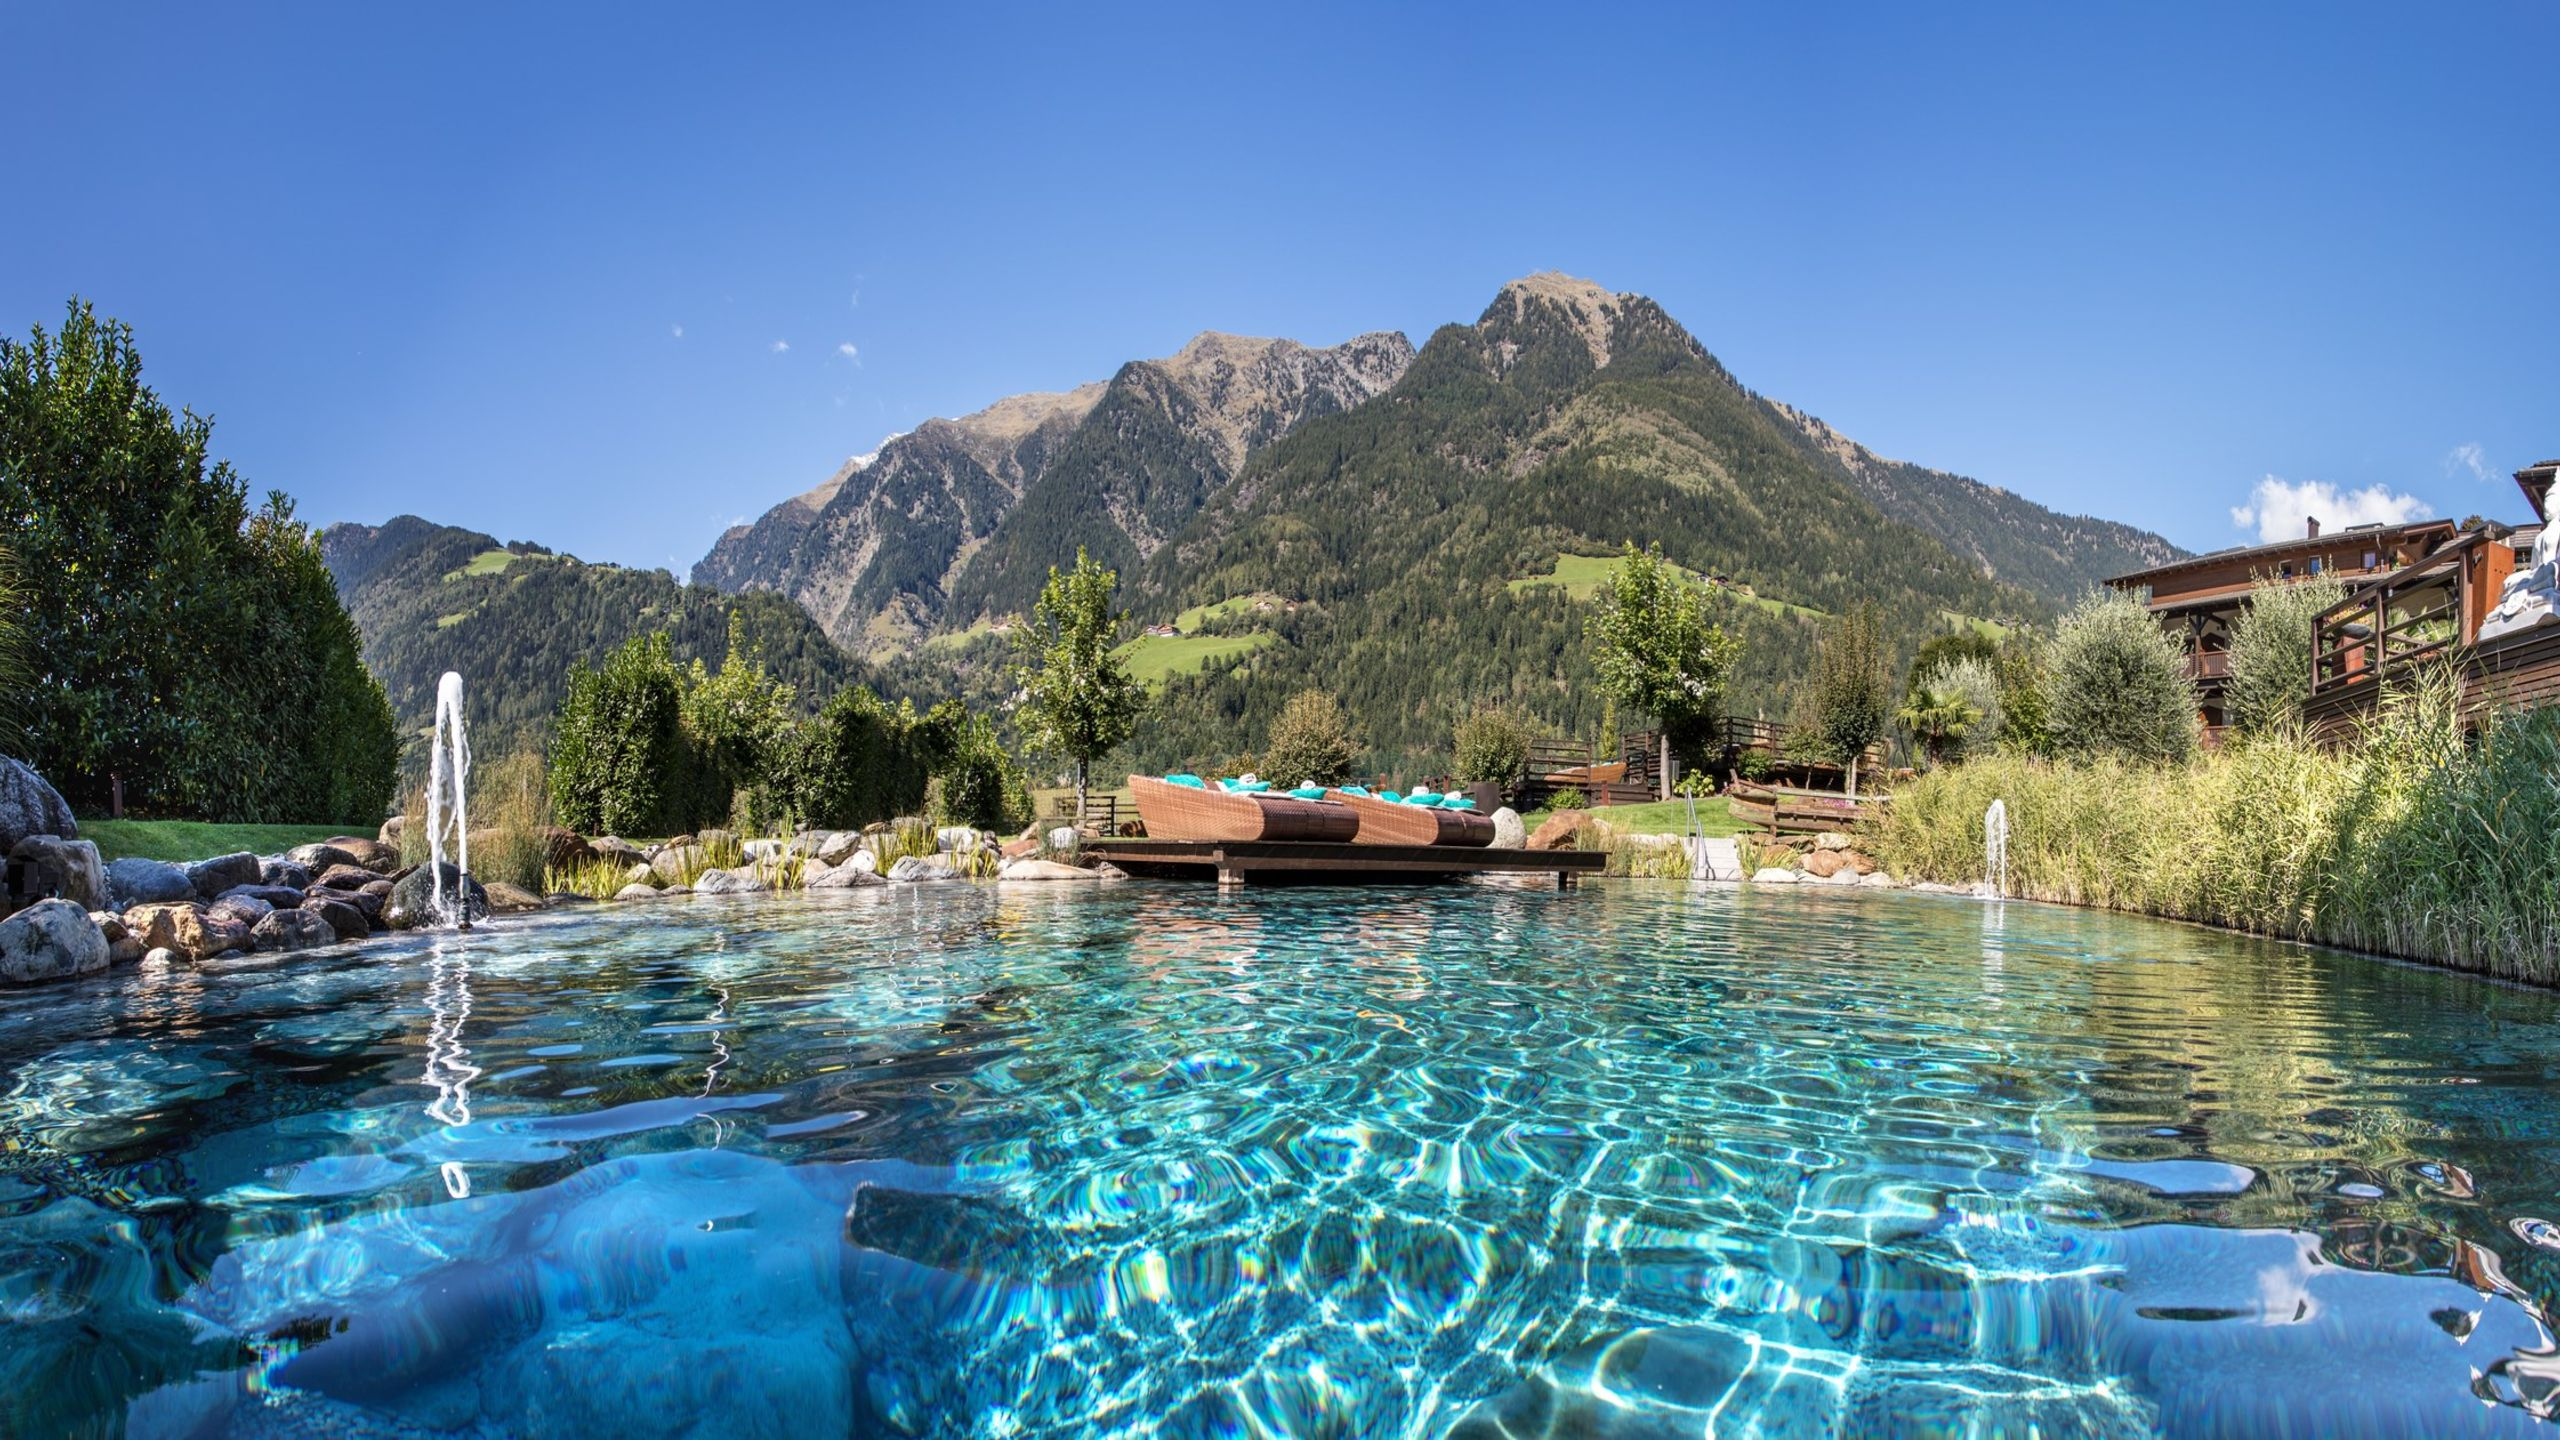 Panorama im Passeiertal Wellnesshotel mit Pool: Andreus Resorts Wellnesshotels Südtirol